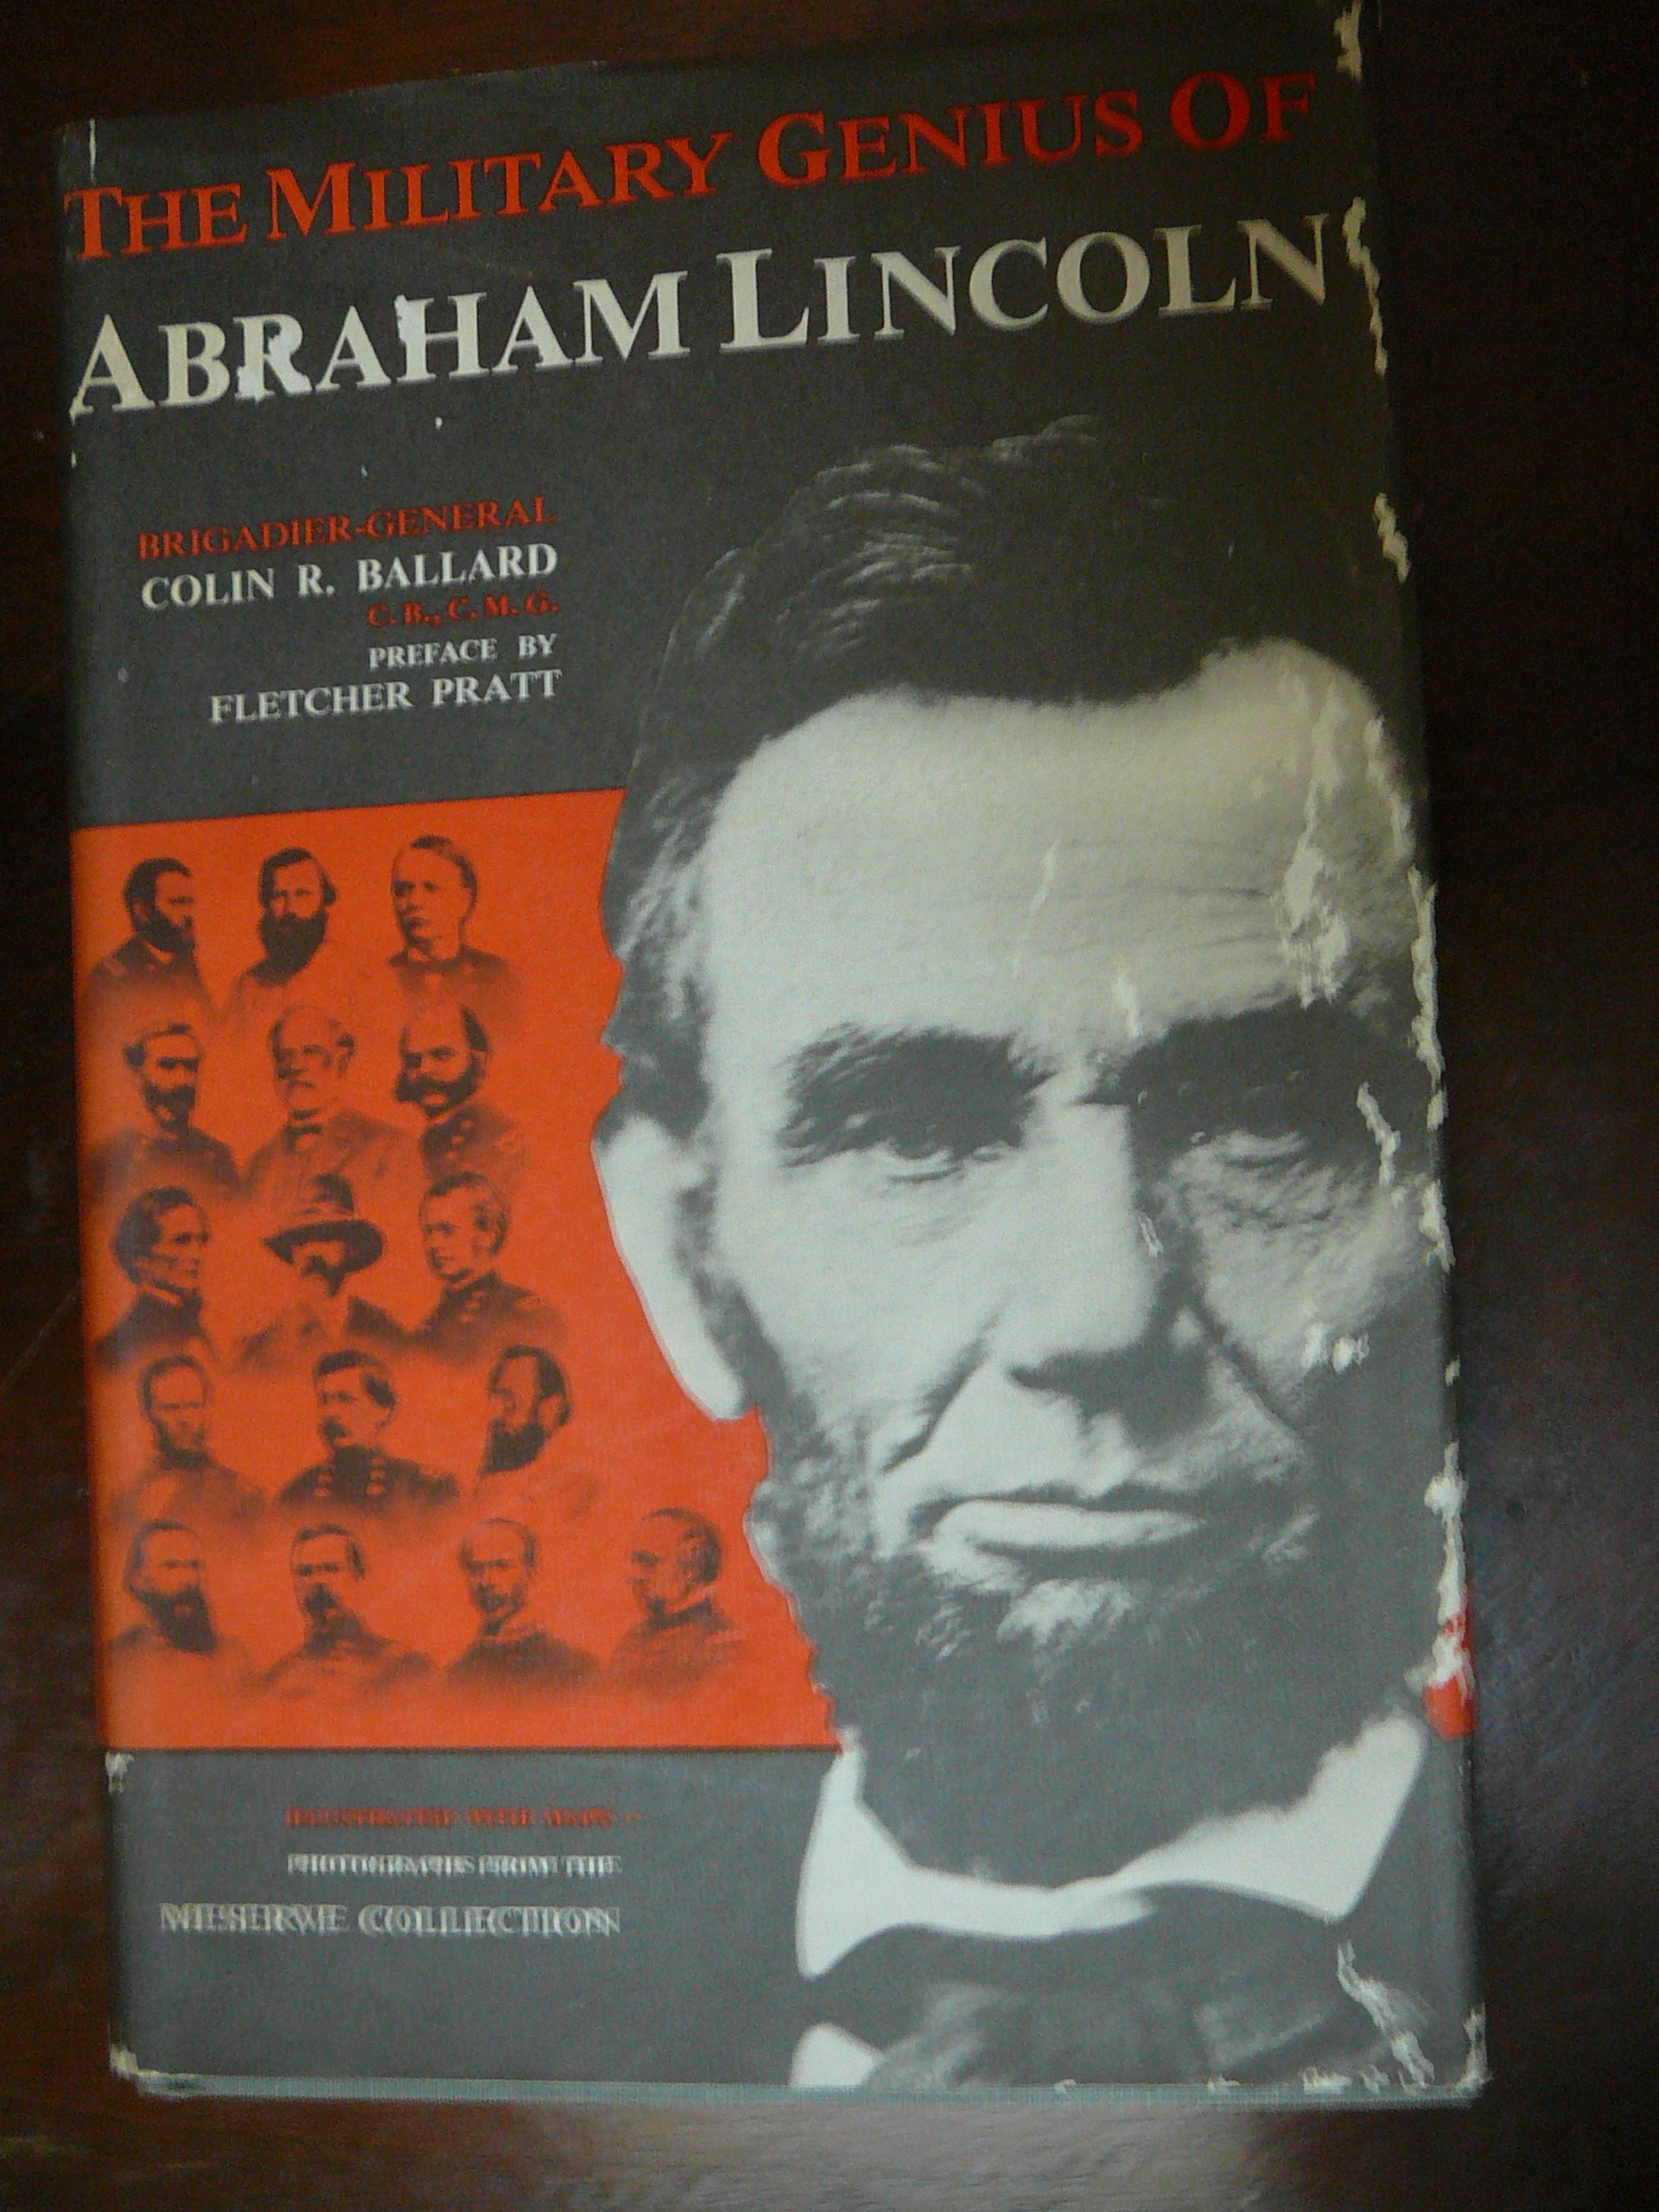 The Military Genius Of Abraham Lincoln An Essay  Colin R Ballard  The Military Genius Of Abraham Lincoln An Essay Hardcover